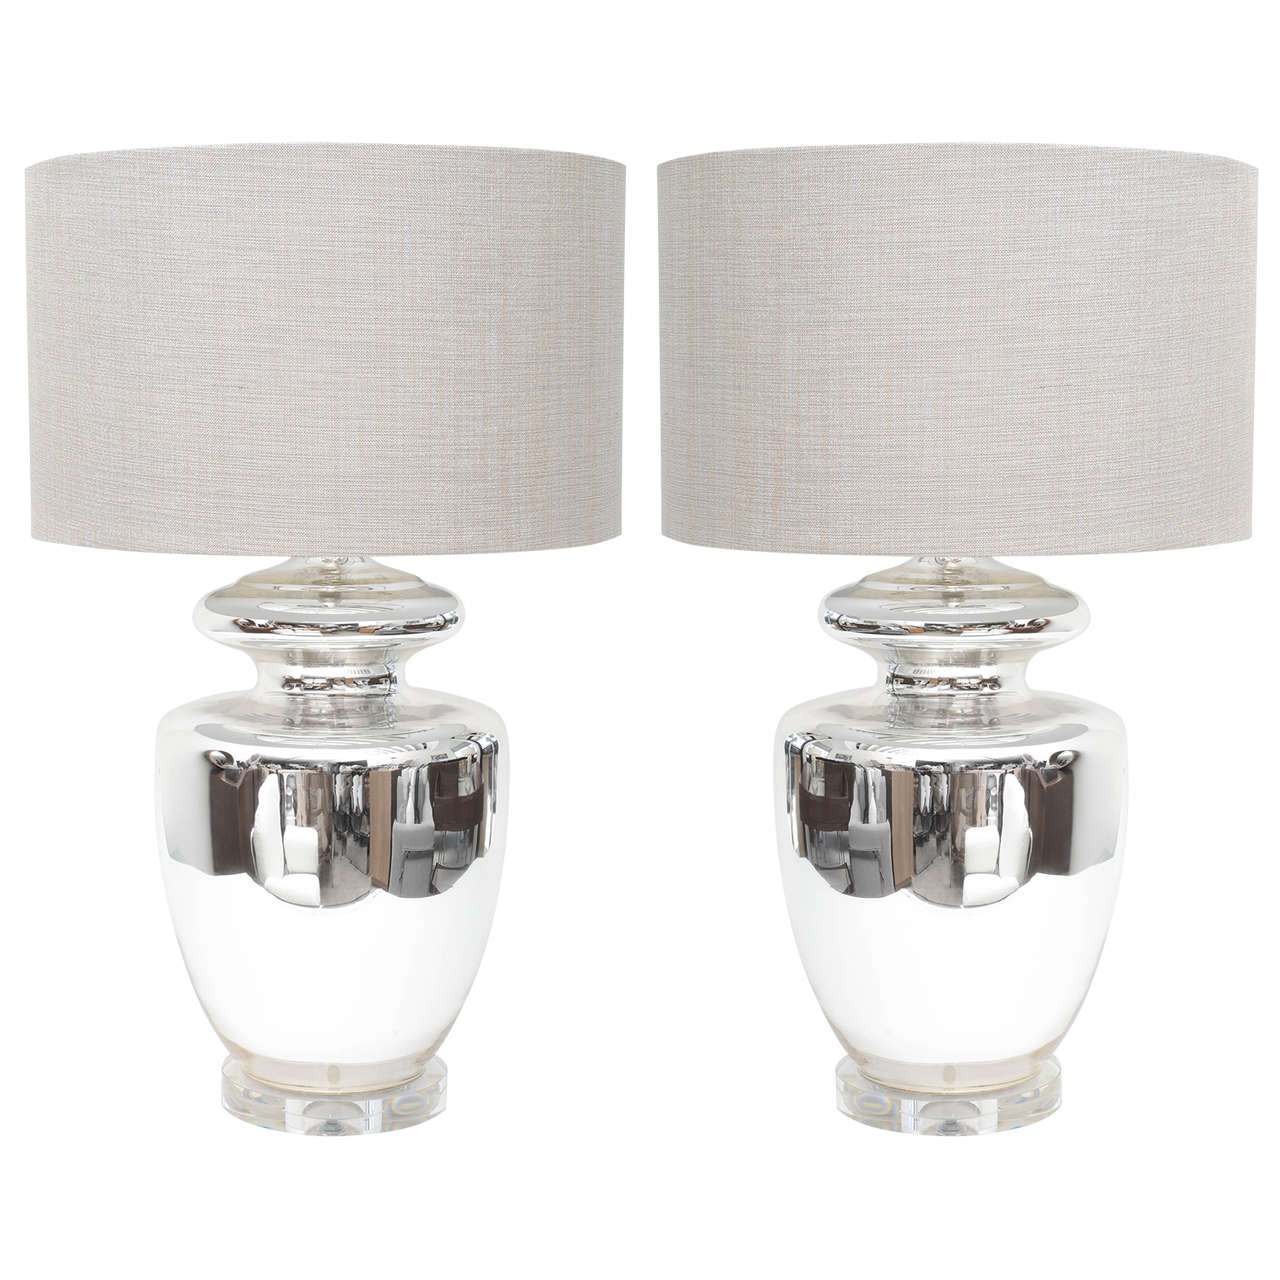 Pair Mid Century Modern Monumental Classic Elegant Mercury Glass Lamps At 1stdibs